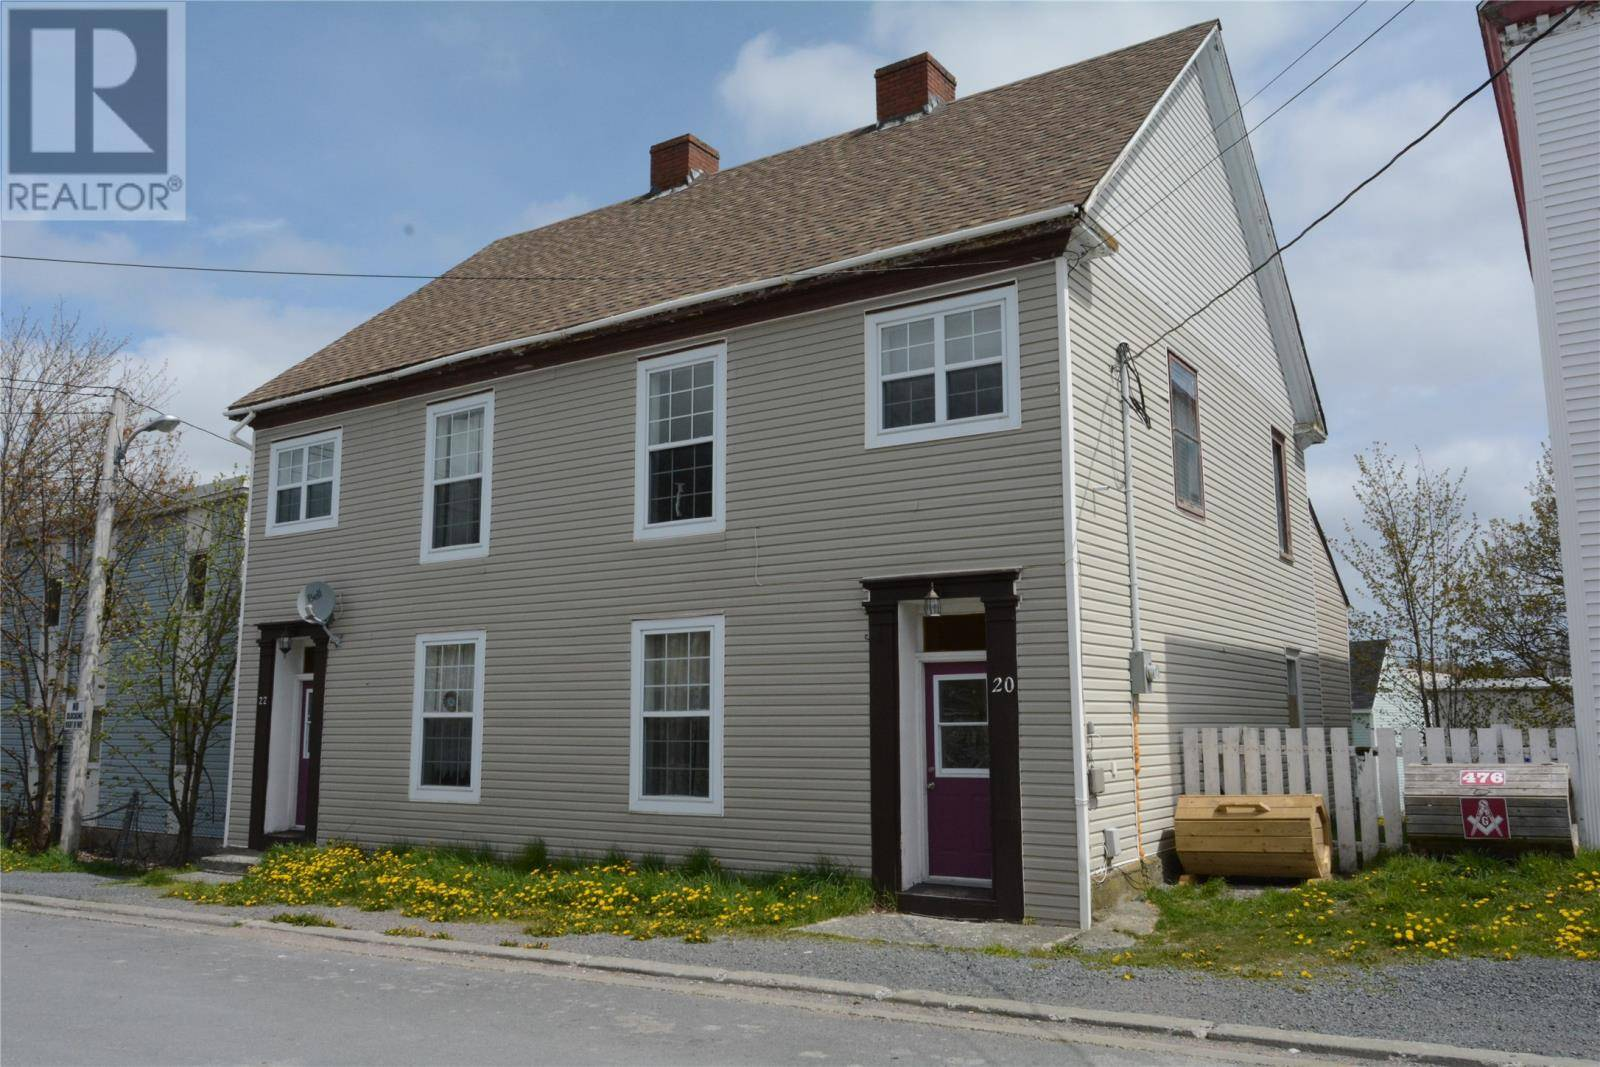 House for sale at 20 Victoria St Harbour Grace Newfoundland - MLS: 1192041